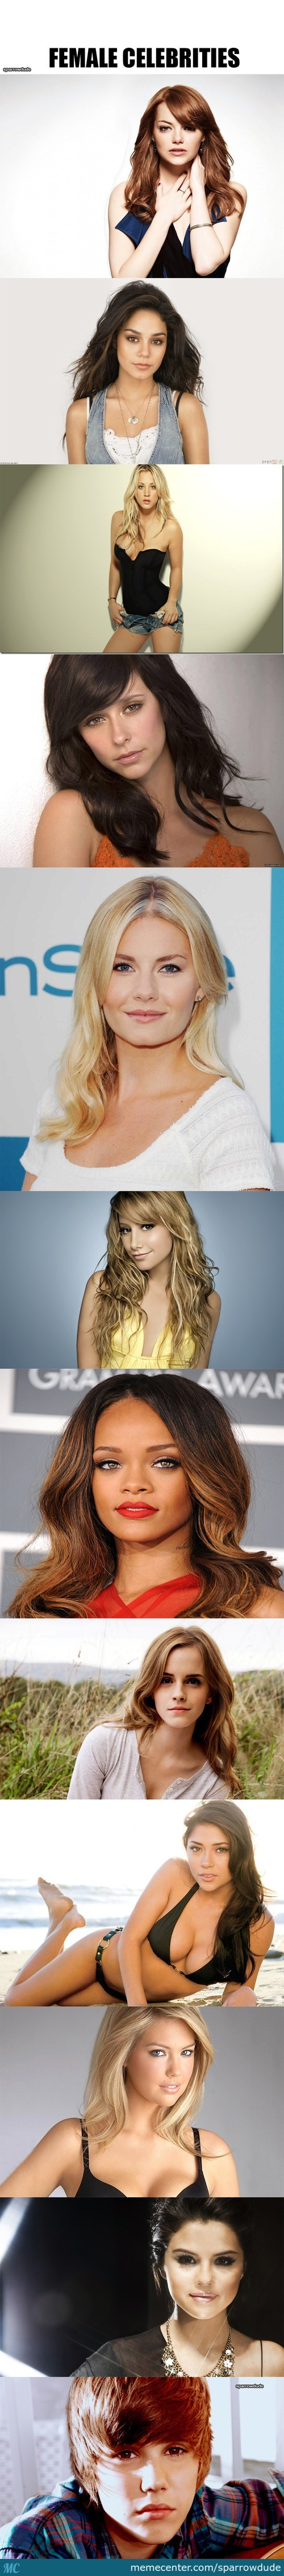 Female Celebrities